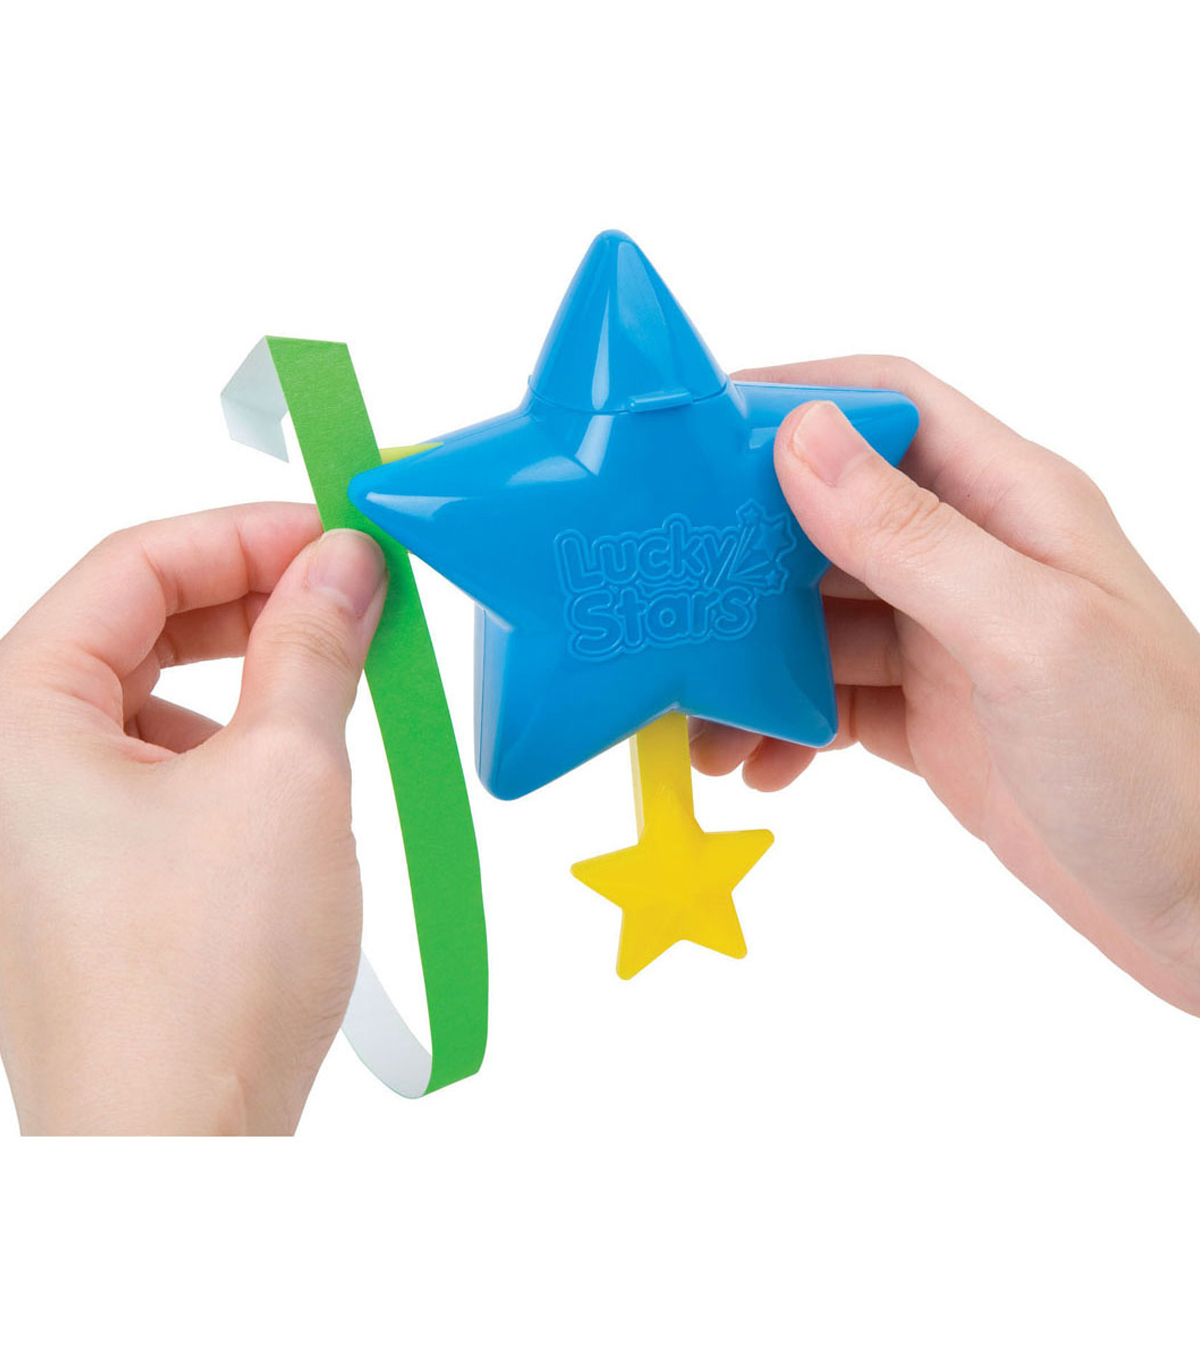 Lucky Stars Maker Kit